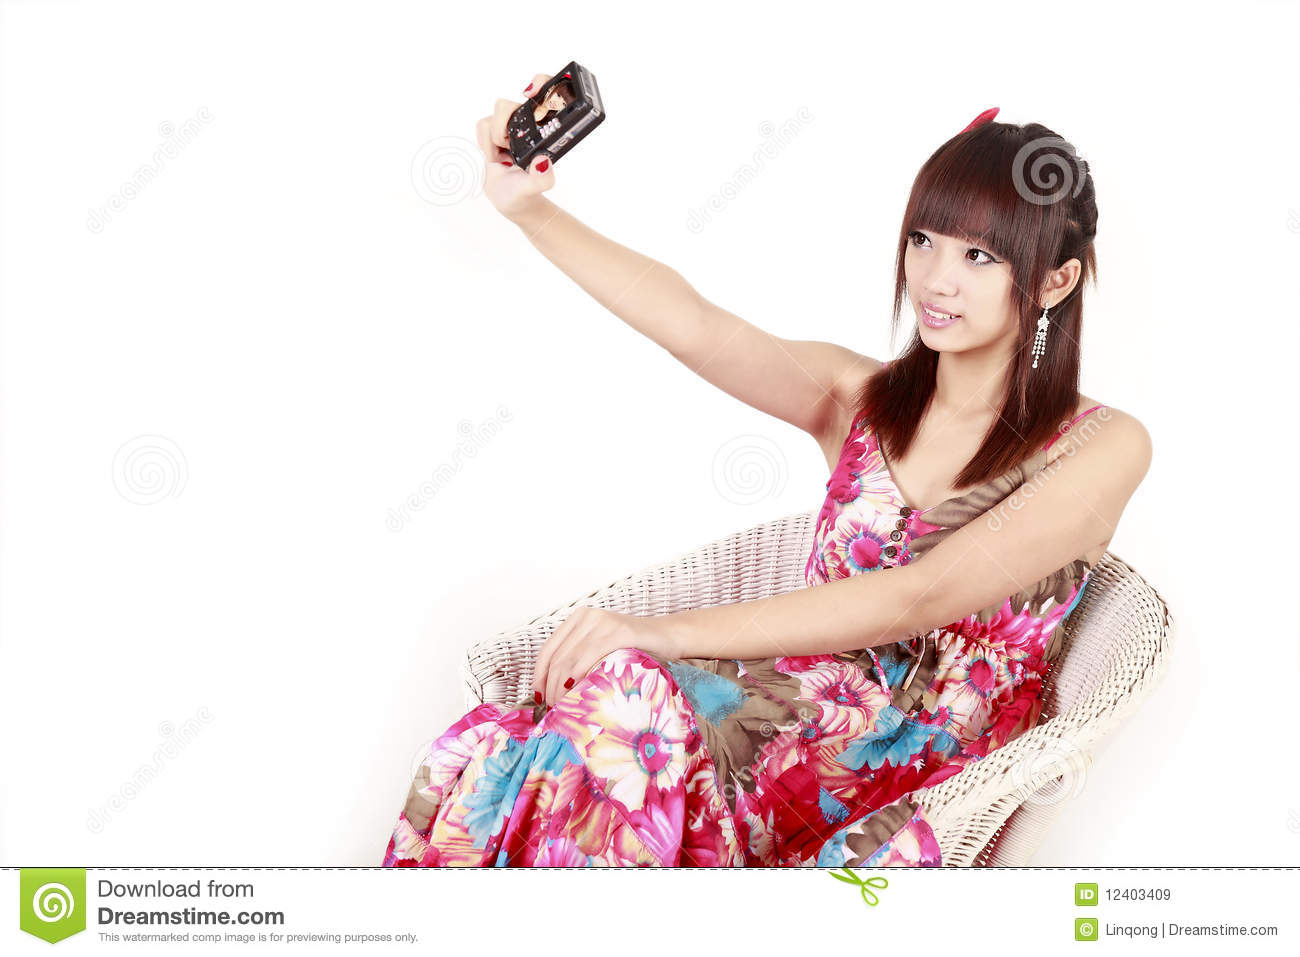 Free self shot pictures Asia Fashion Girl Self Shot Stock Image Image Of Adult Lifestyle 12403409